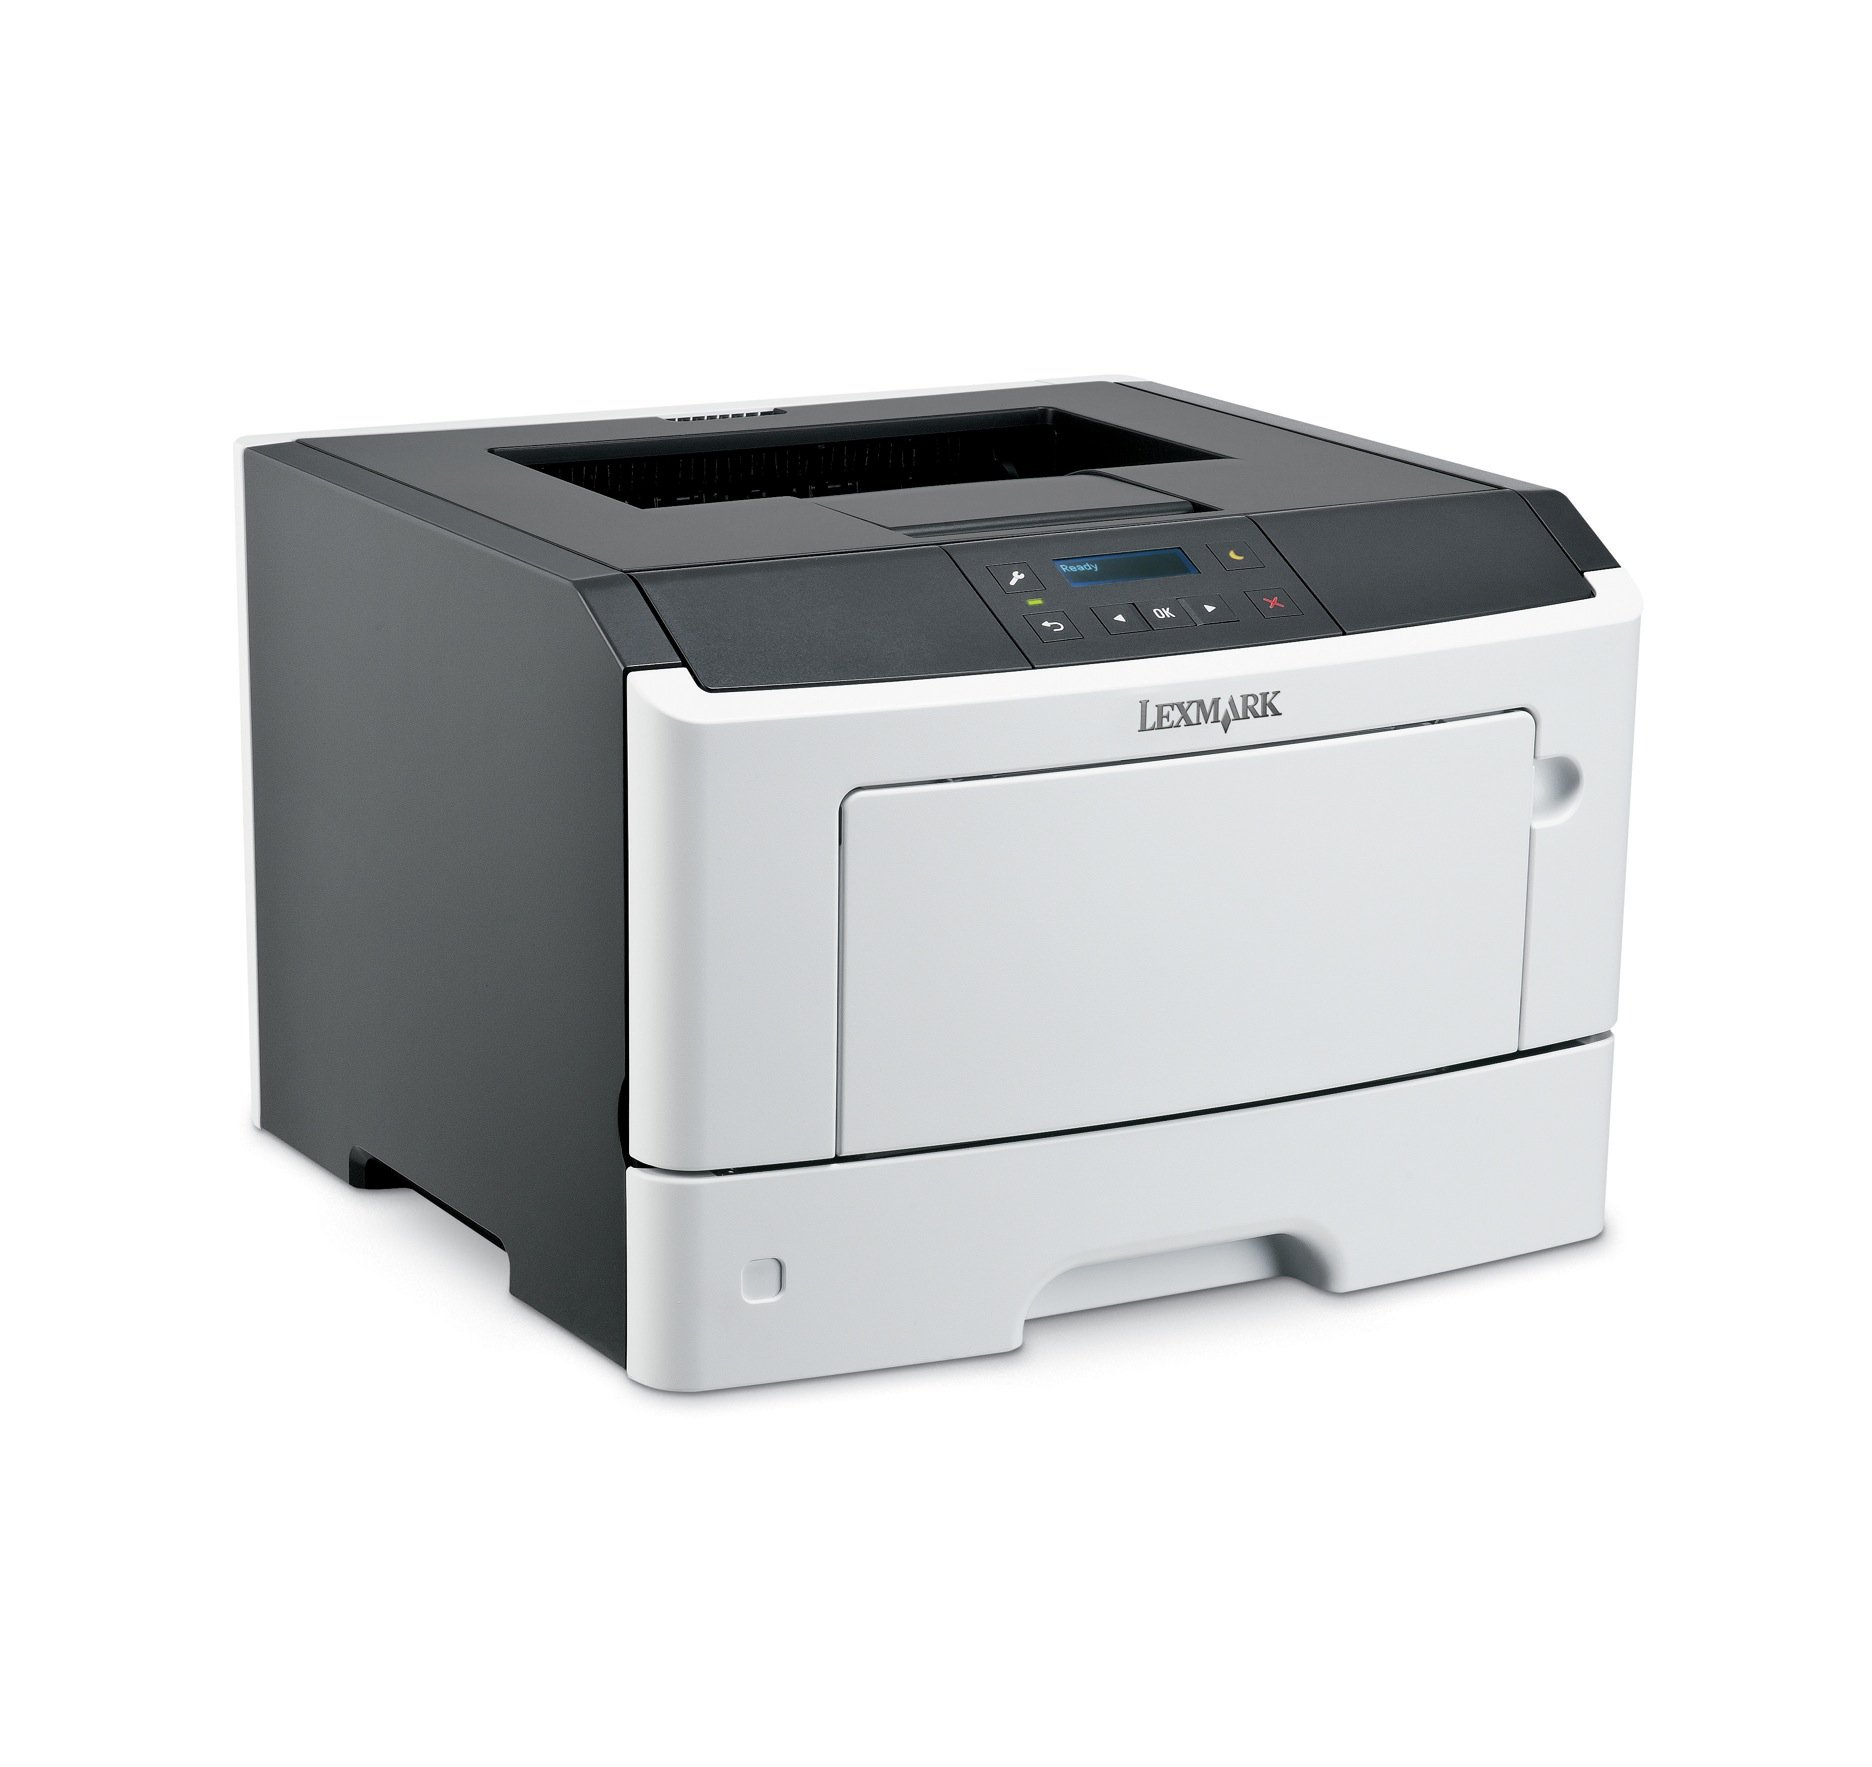 Lexmark MS317dn Compact Laser Printer, Monochrome, Networking, Duplex Printing by Lexmark